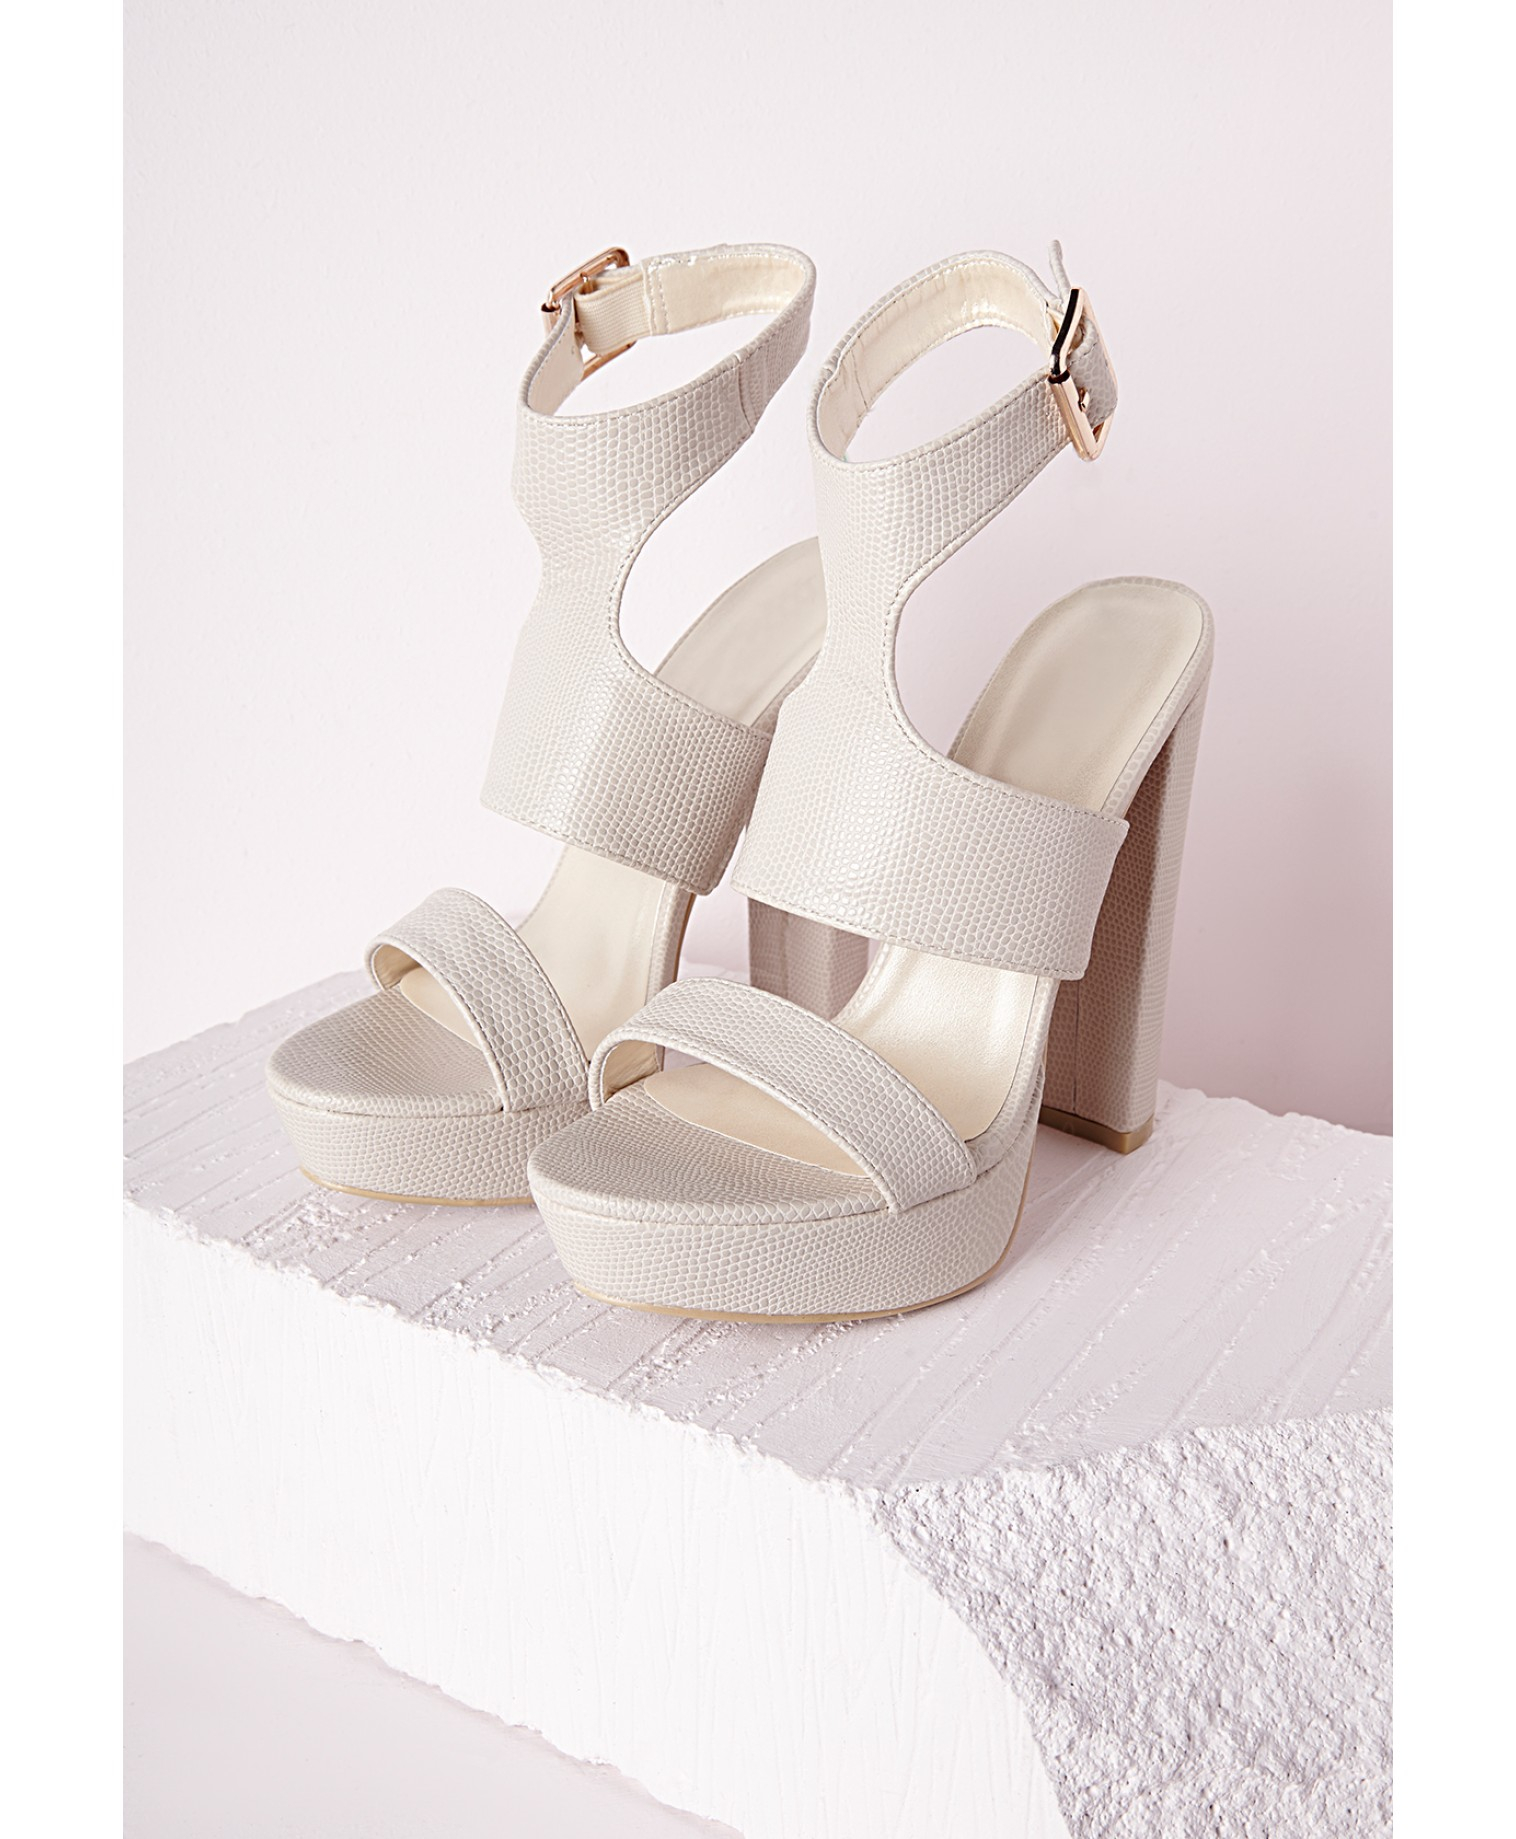 a2e3cf42d1a Lyst - Missguided Platform Ankle Strap Heeled Sandals Nude in Natural